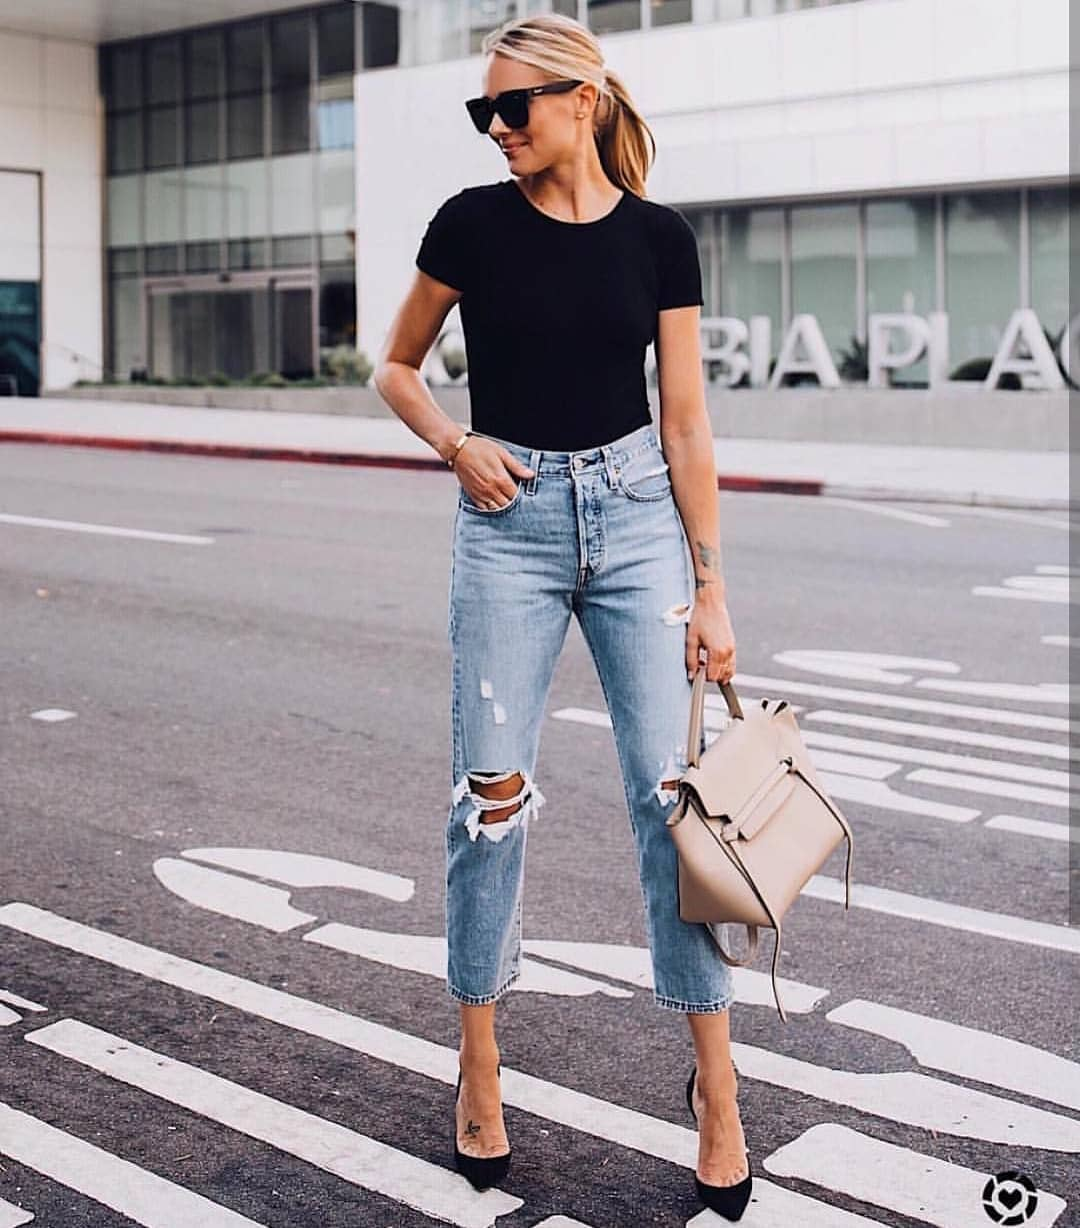 Black Tee And Ripped Wash Blue Jeans With Black Heels: Summer Basic Combo 2019